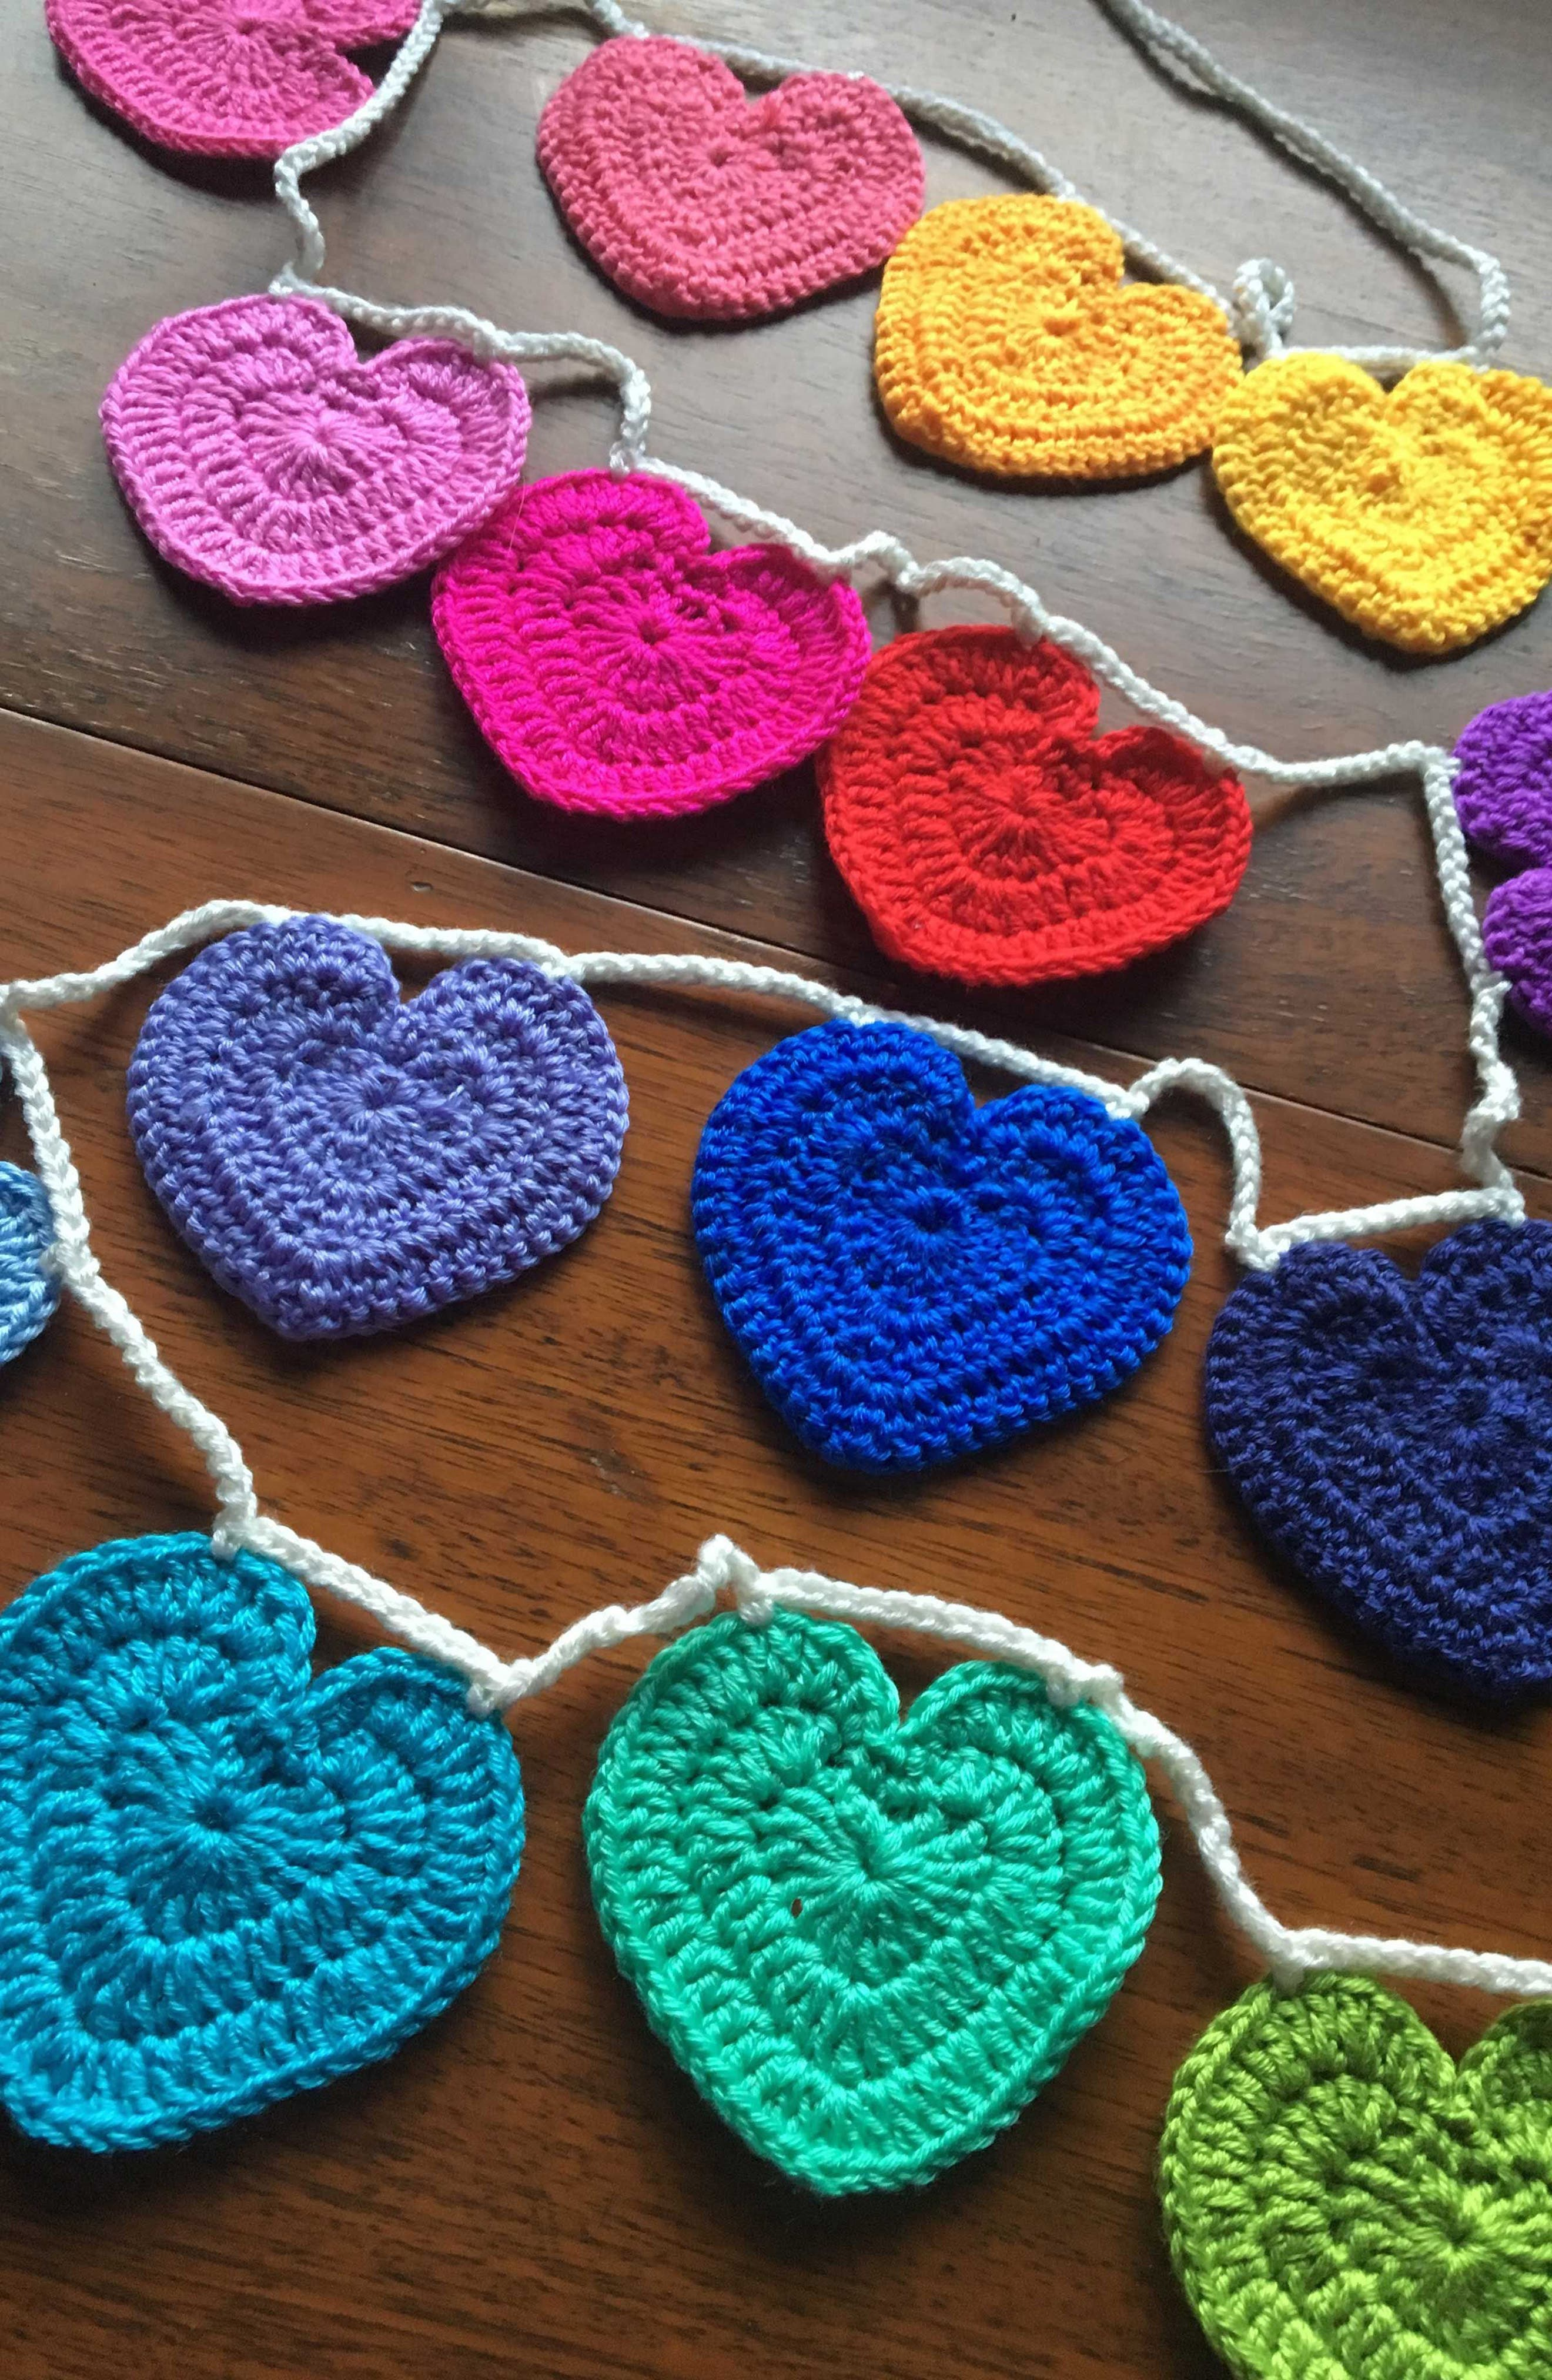 Crocheted Heart Bunting,                             Alternate thumbnail 4, color,                             Rainbow